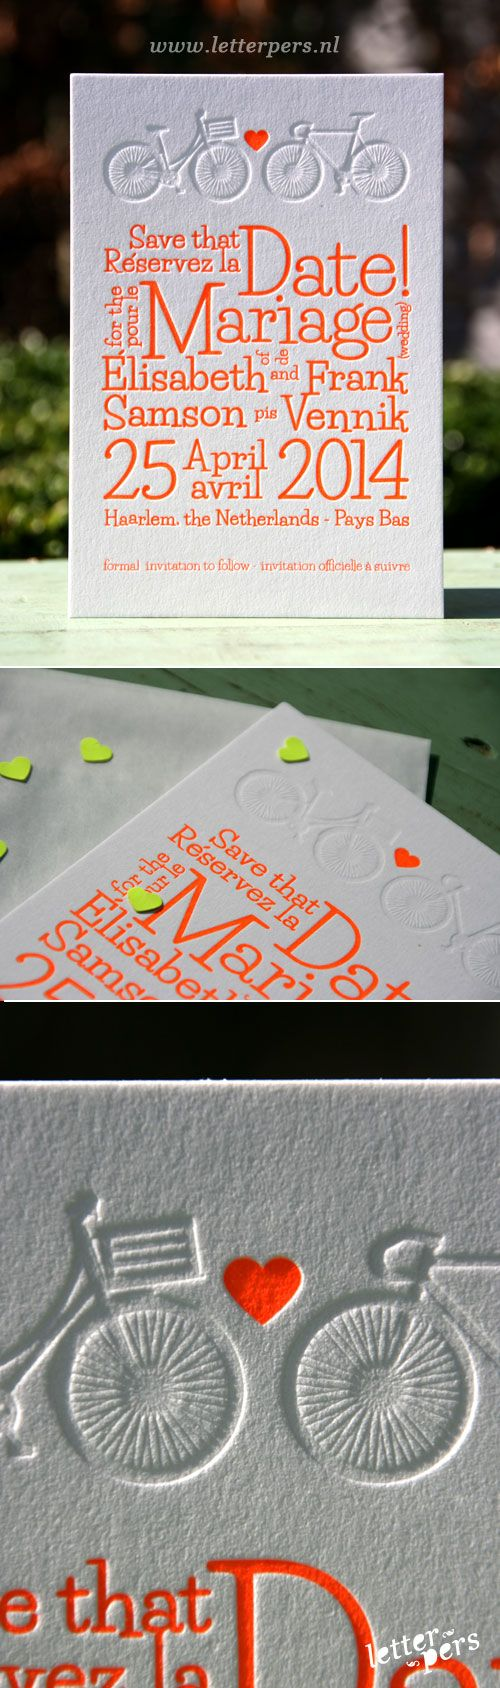 format of indian wedding invitation in english%0A Orange     with blind deboss bikes for this wedding invite from letterpres